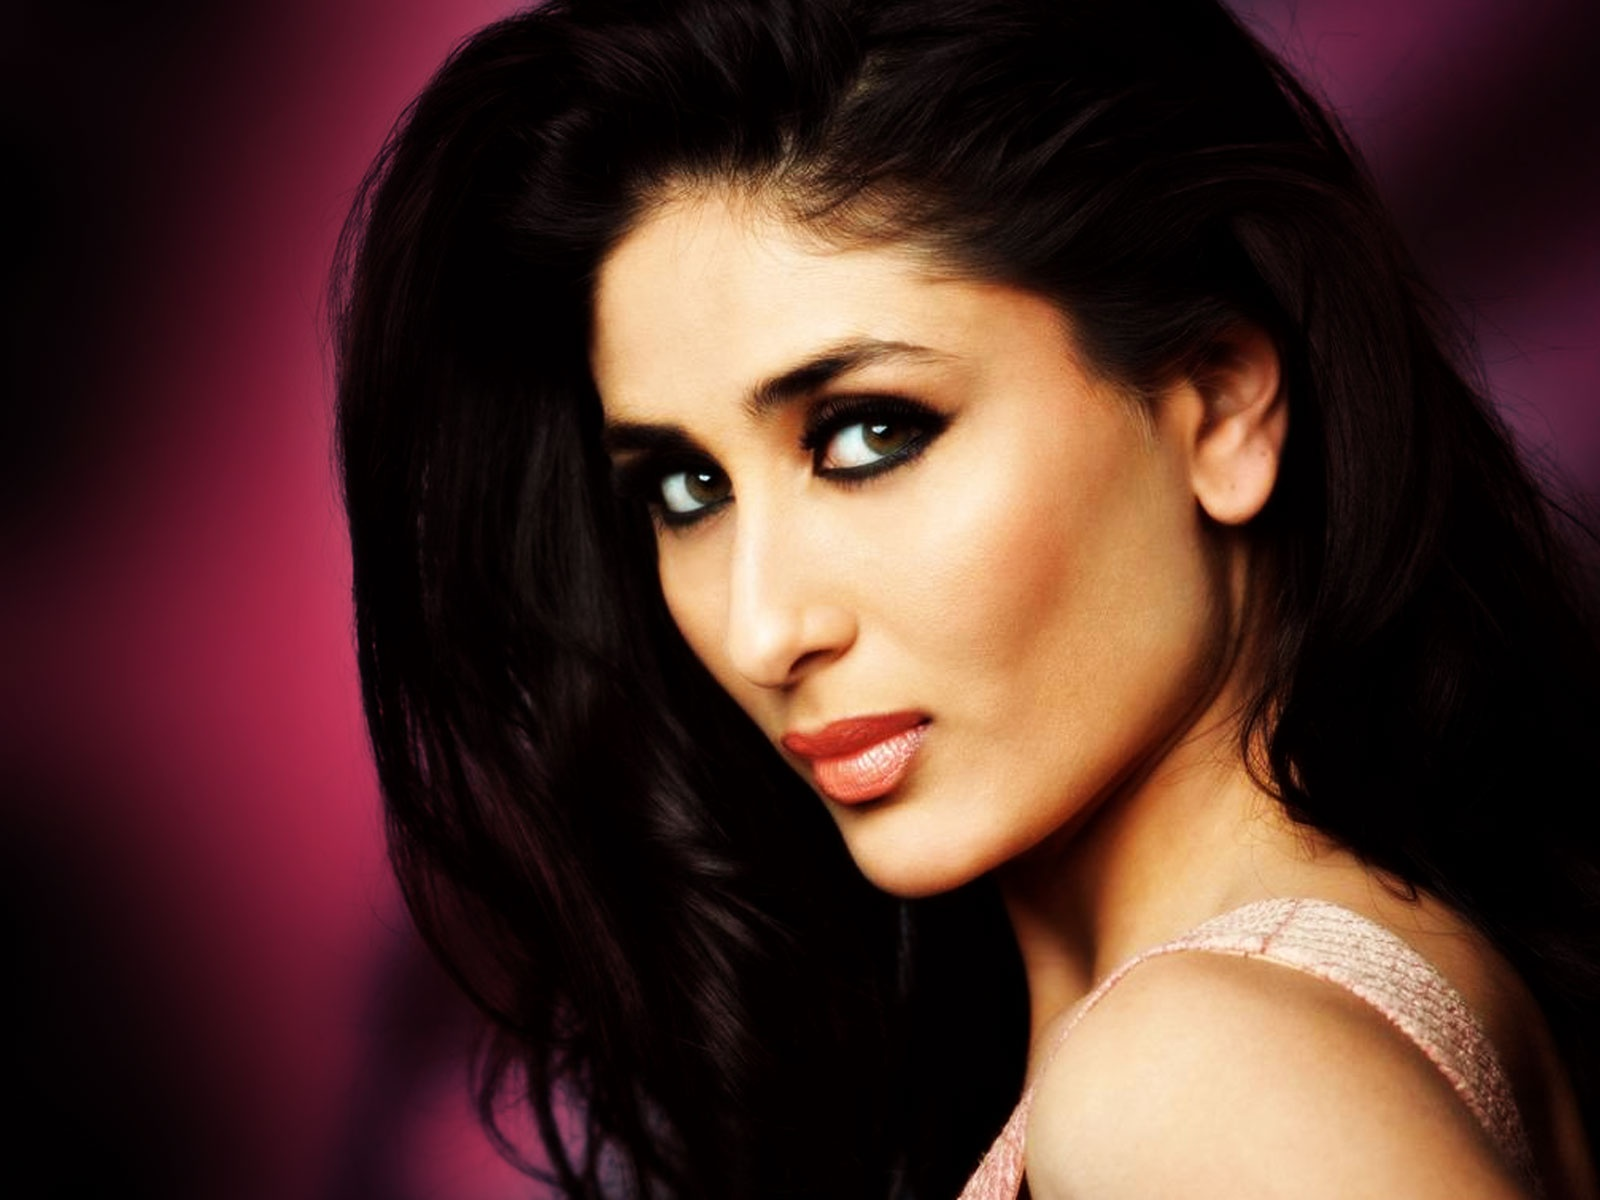 Wallpaper india indian actresses hd wallpapers - Bollywood image hd download ...